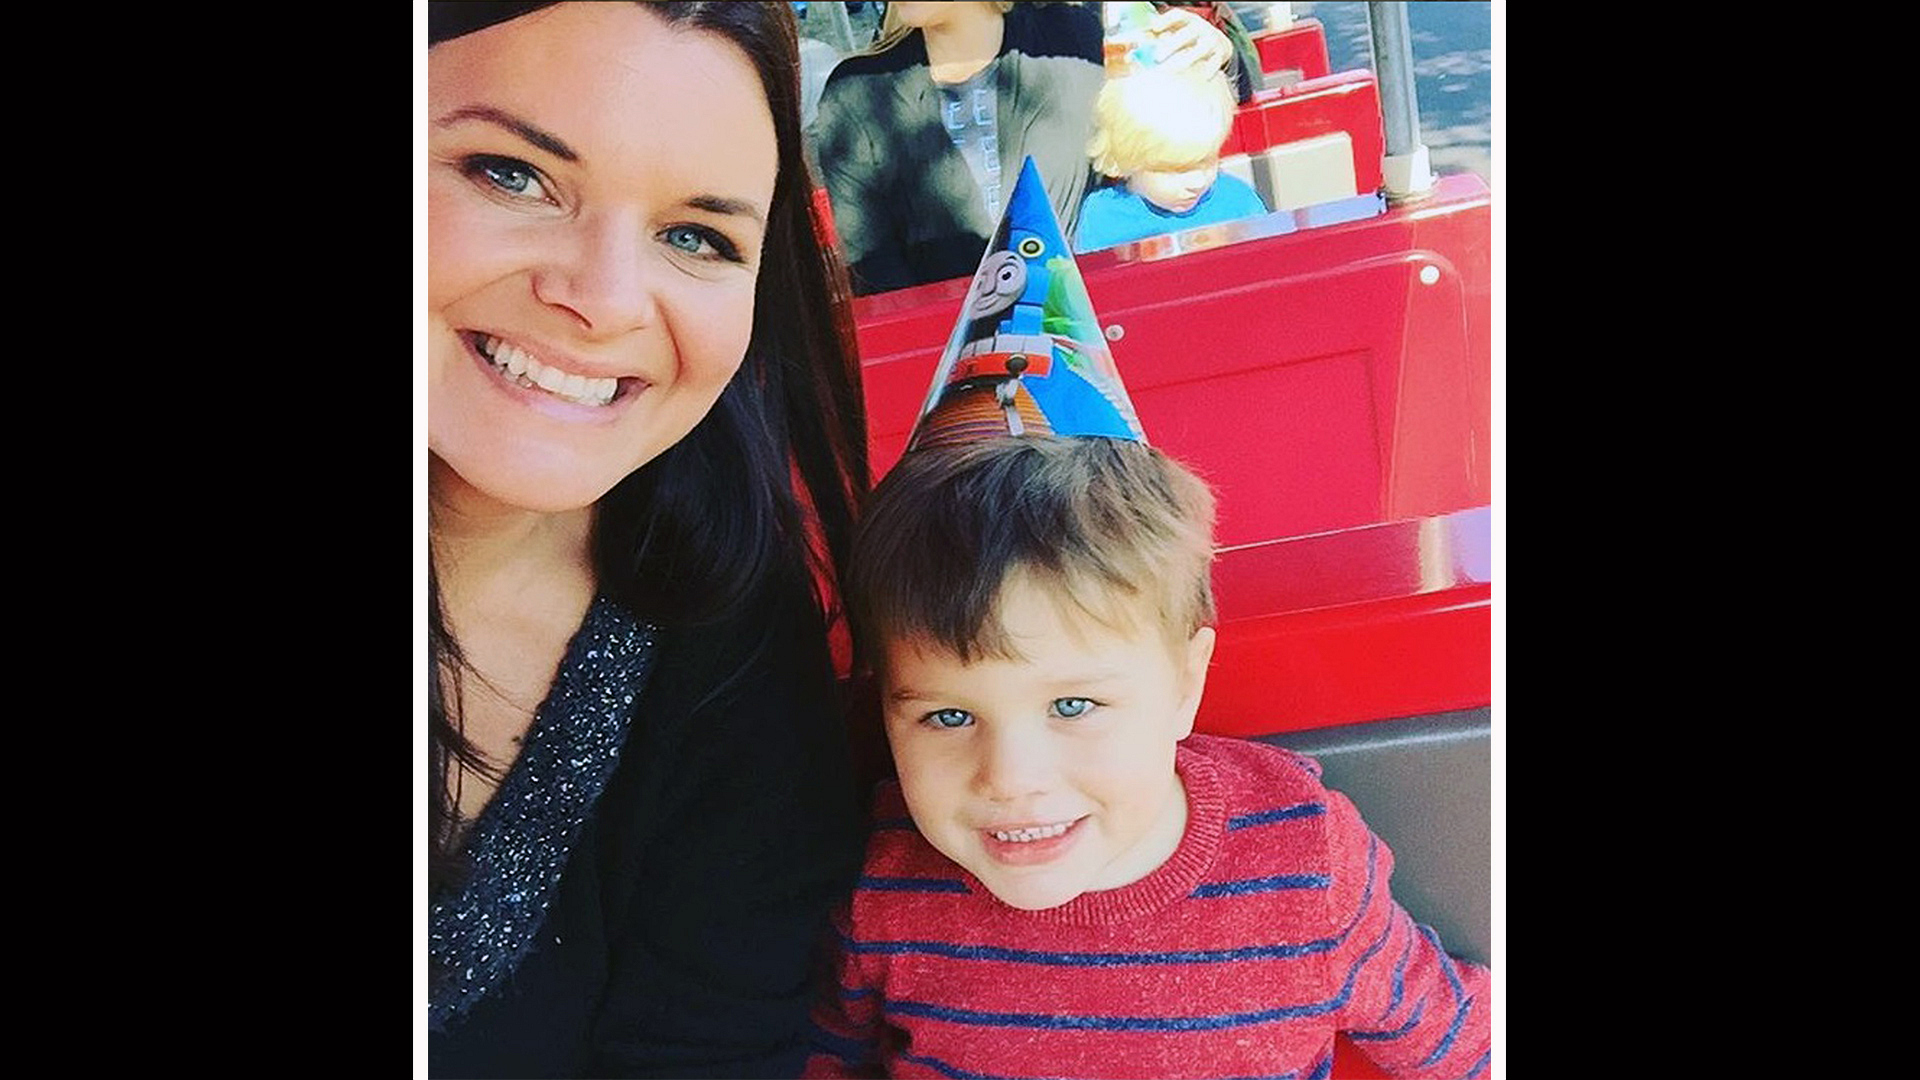 Heather Tom and her son, Zane, look cute as can be in their party gear.